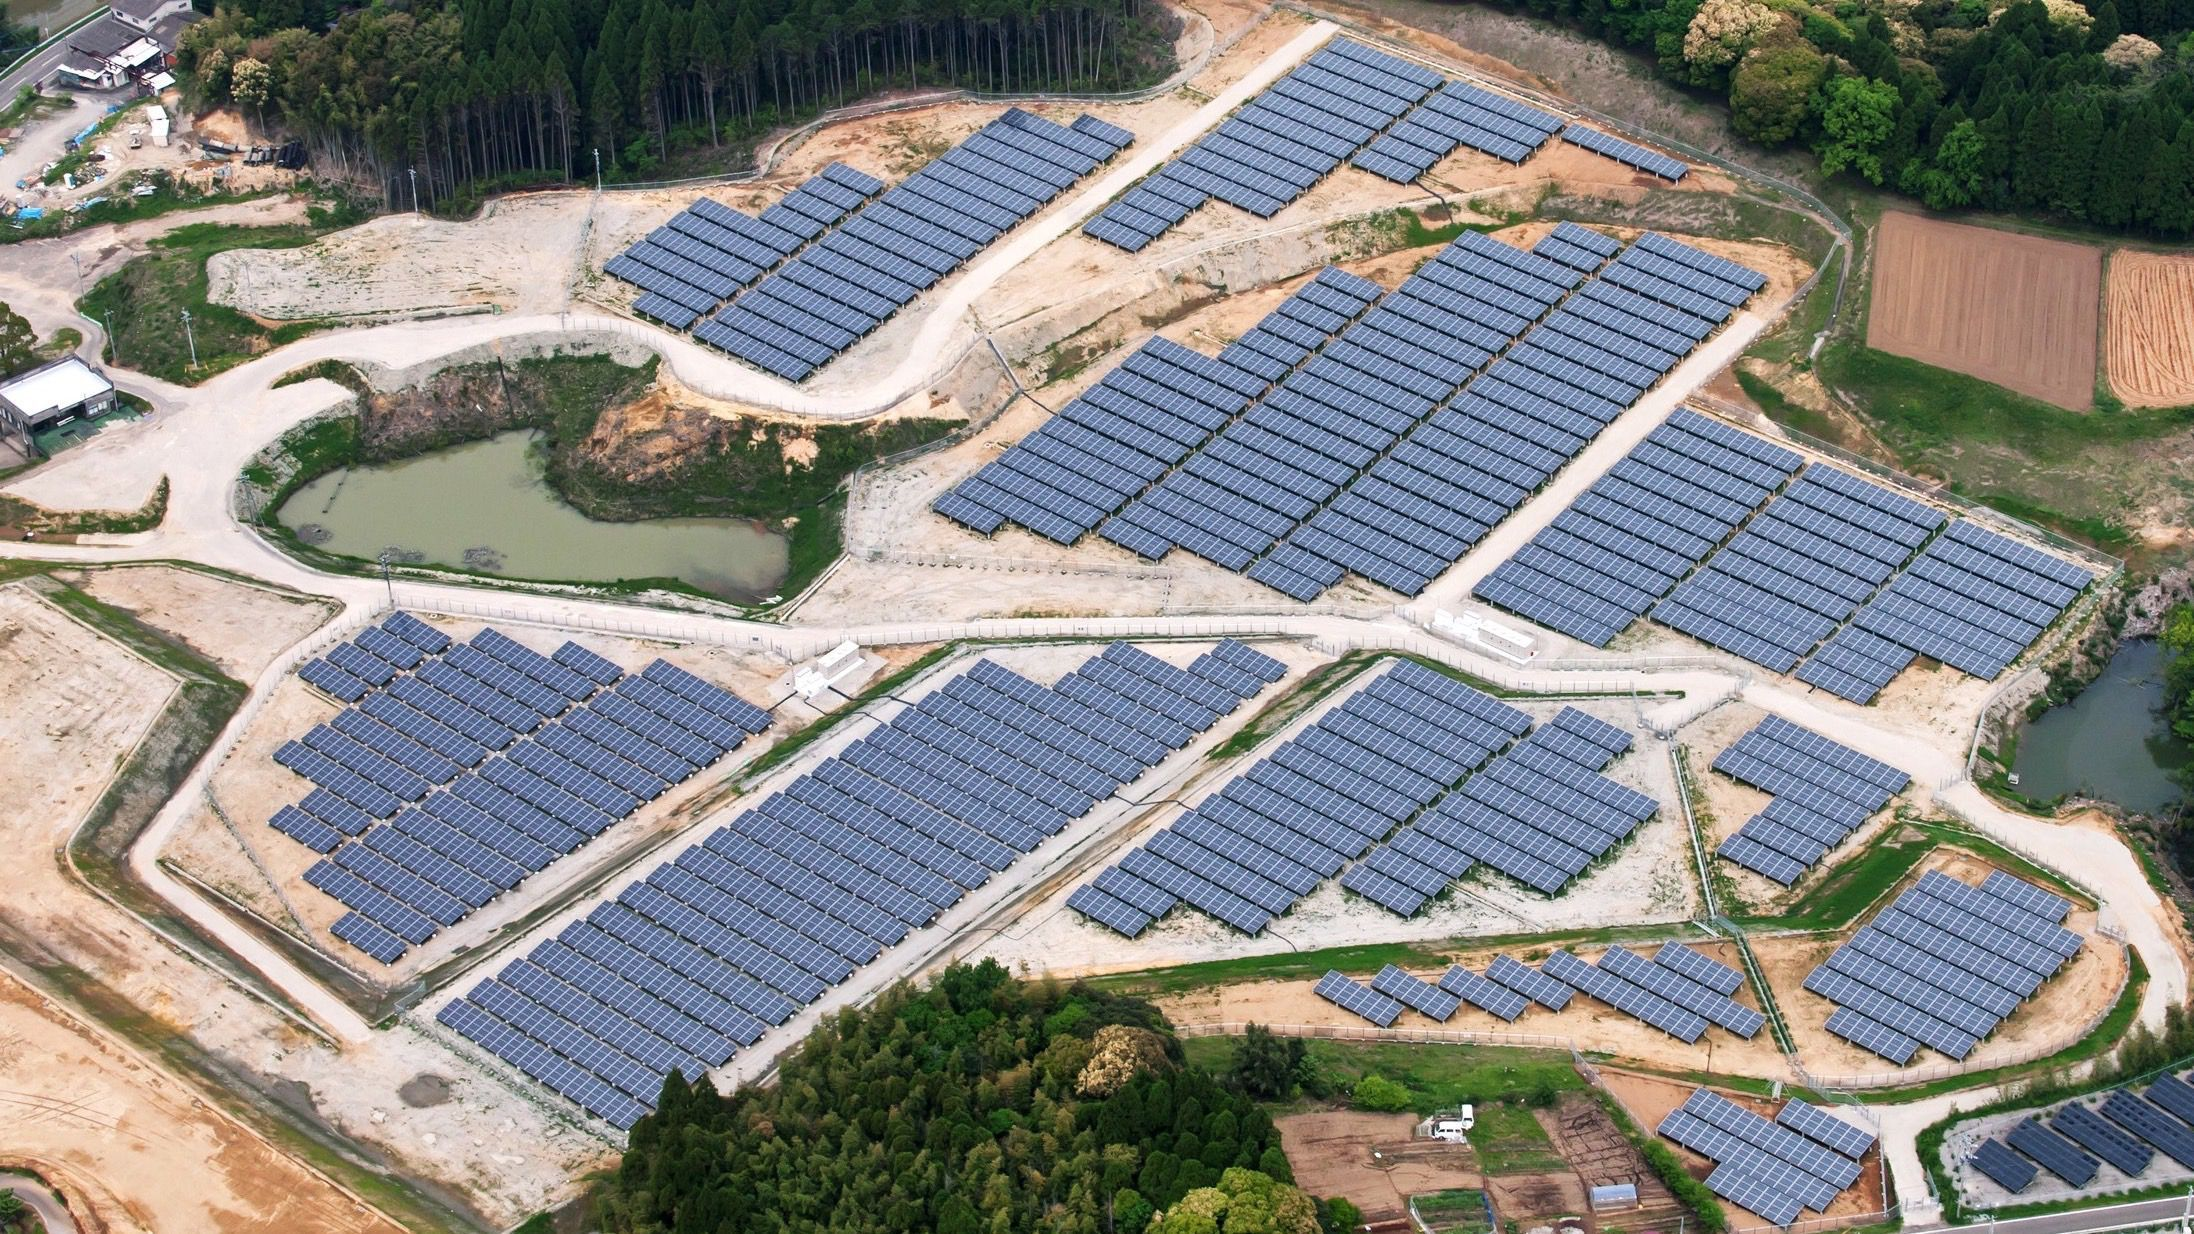 https://lifeboat.com/blog.images/japan-is-building-solar-energy-plants-on-abandoned-golf-courses-and-the-idea-is-spreading-steve-mollman-quartz.jpeg